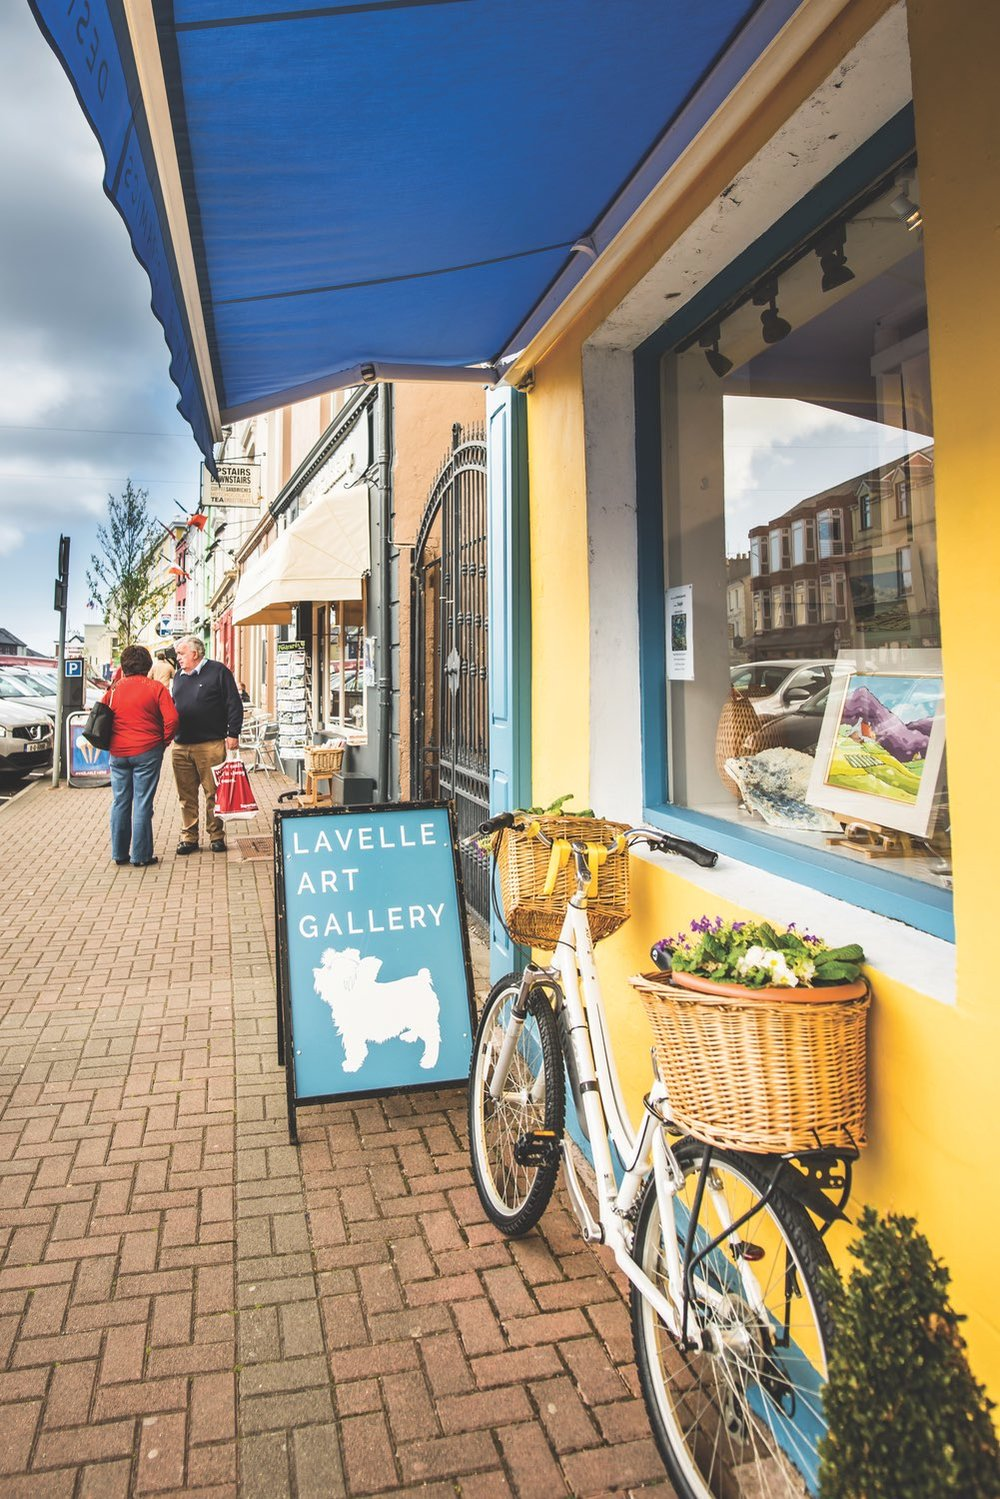 Today, Clifden's Main Street boasts colourful shops, galleries, pubs, cafes, and more.